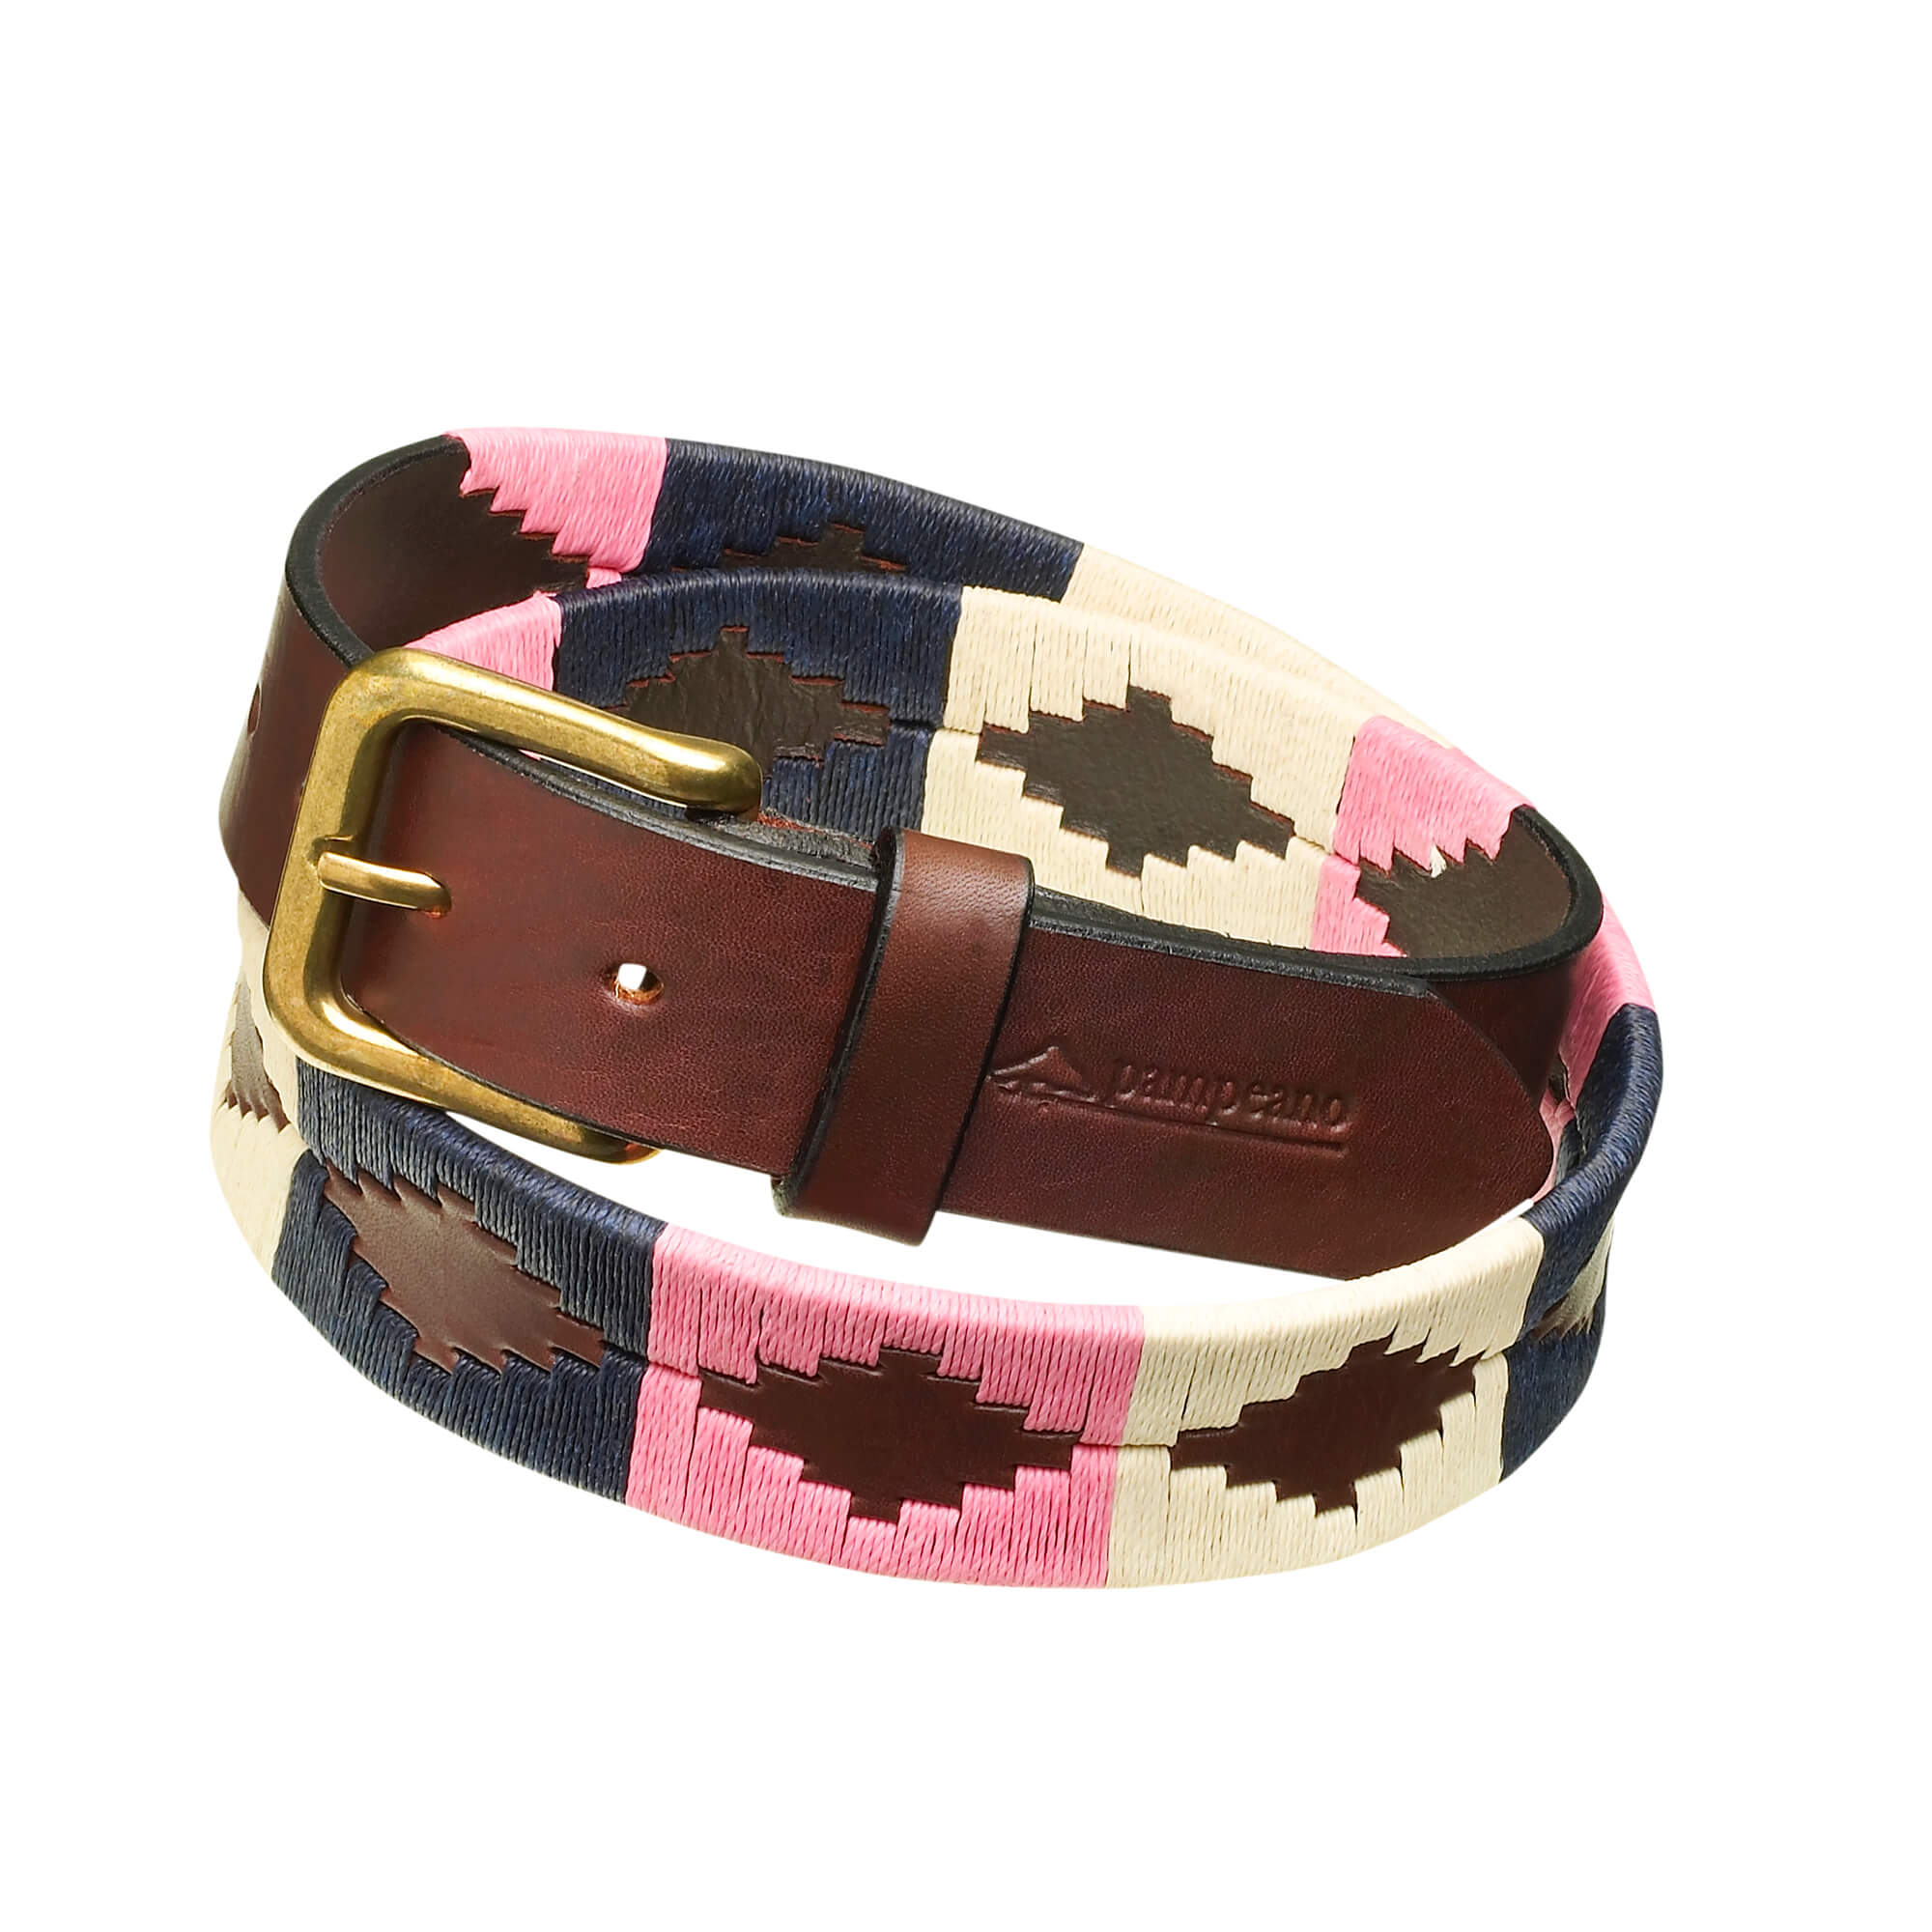 leather polo belts cream pink navy dulce